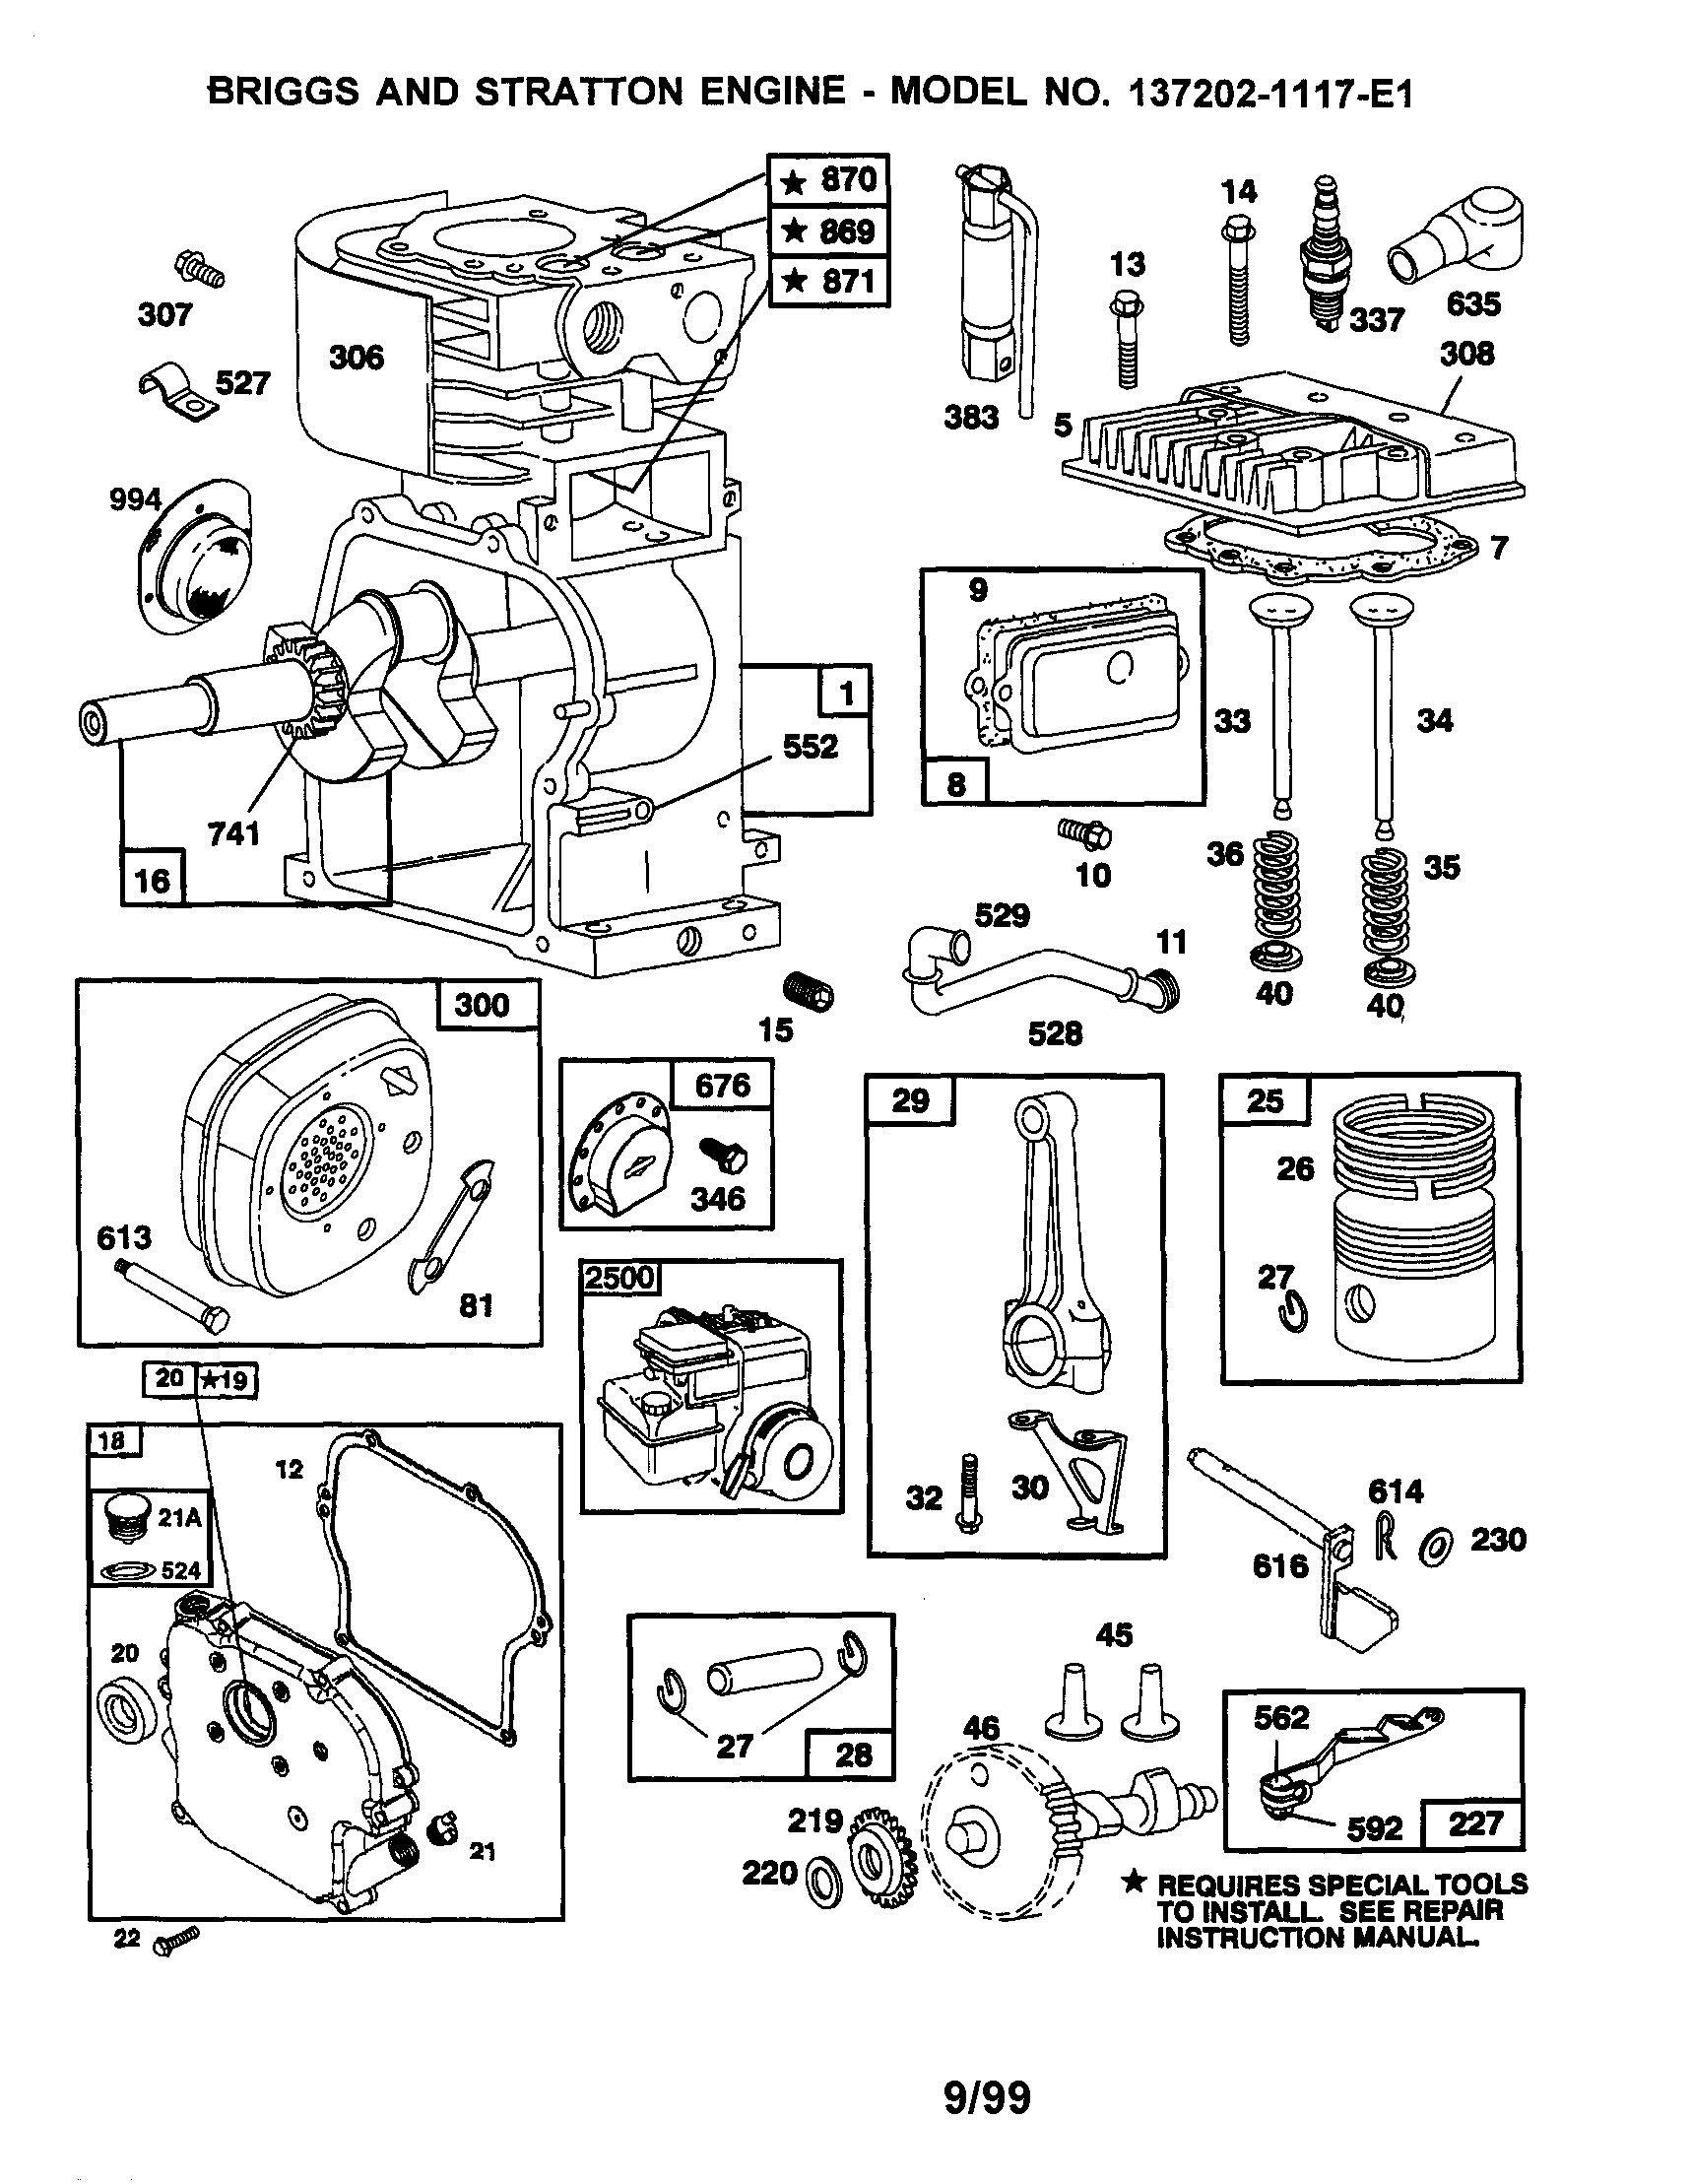 best briggs and stratton 550 series carburetor diagram. Black Bedroom Furniture Sets. Home Design Ideas